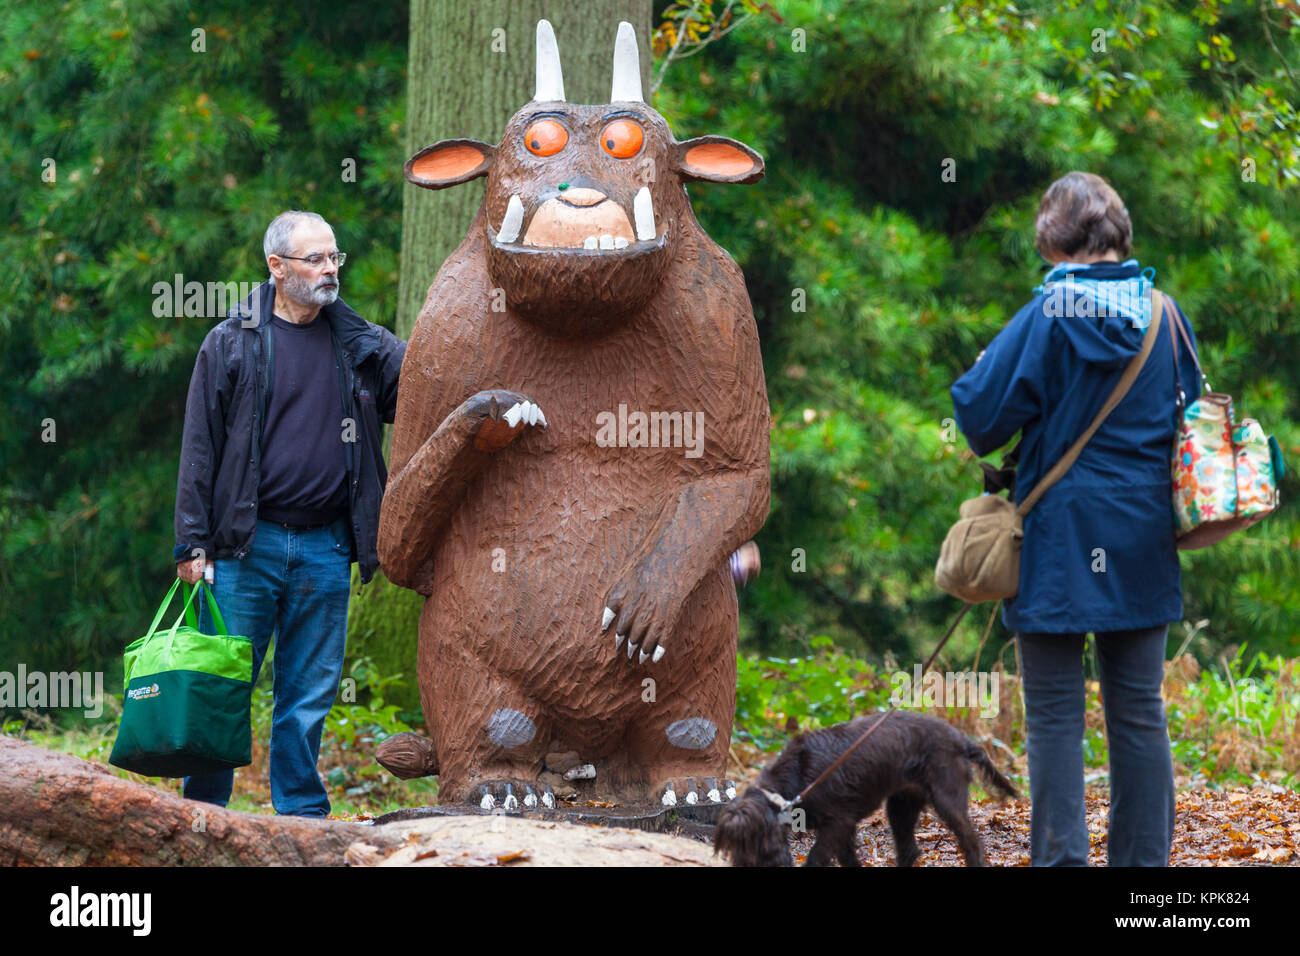 A man poses for a photo with the gruffalo at the Bedgebury National Pinetum at Bedgebury, Kent - Stock Image